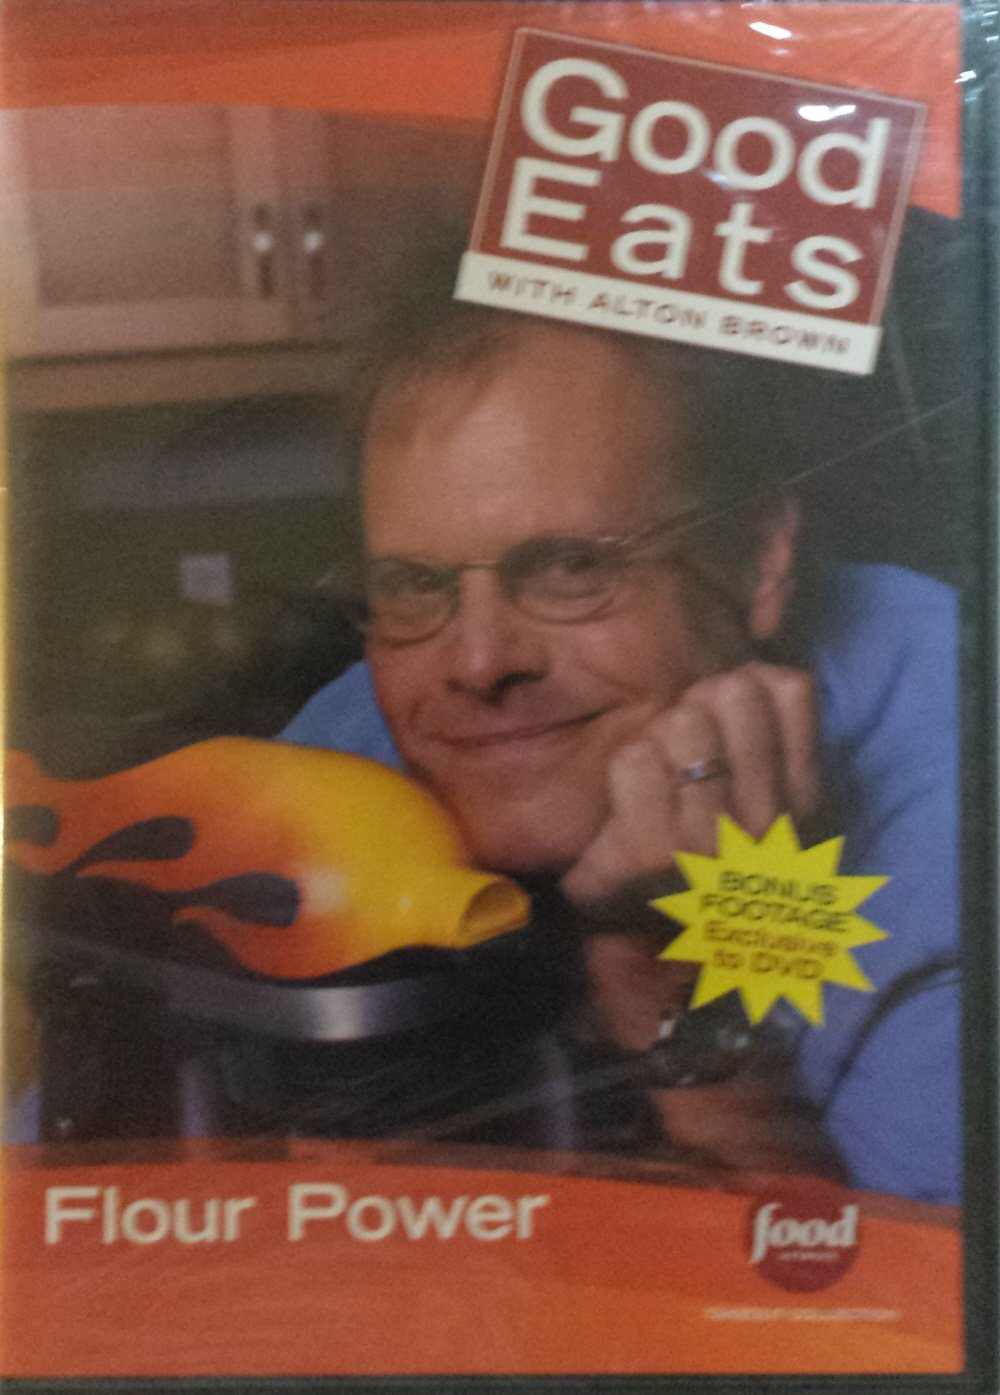 Food Network Takeout Collection DVD - Good Eats With Alton Brown - Flour Power - Includes BONUS FOOTAGE Plus The Dough Also Rises / Puff the Magic Pastry / Choux Shine